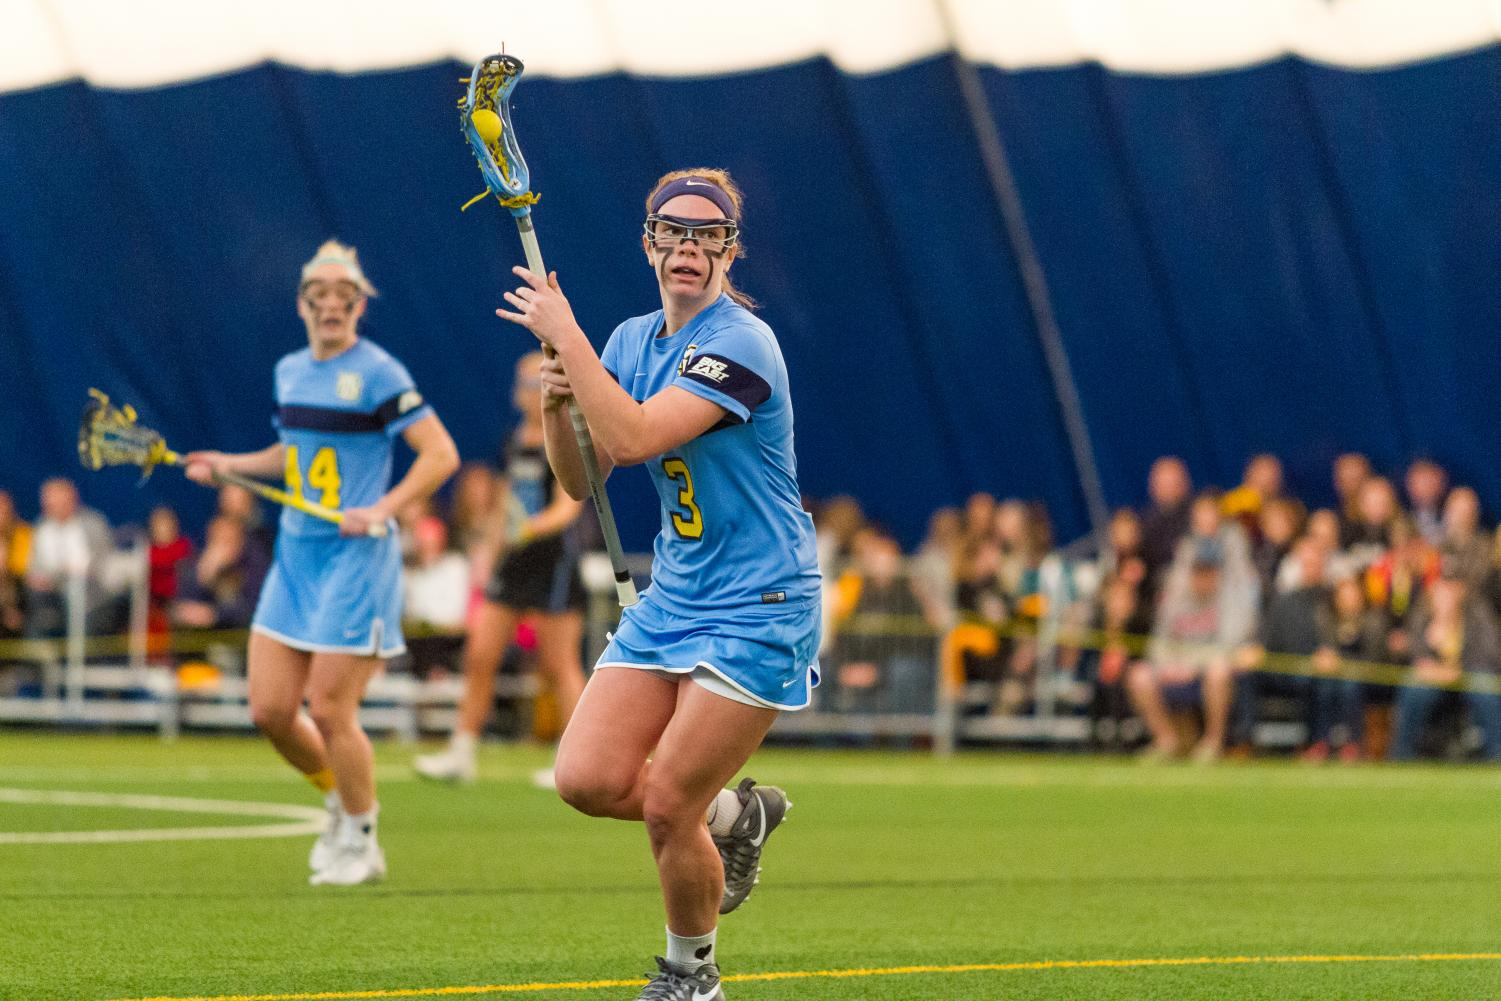 Grace Gabriel scored five of Marquette's eight goals in a loss to Louisville Sunday.